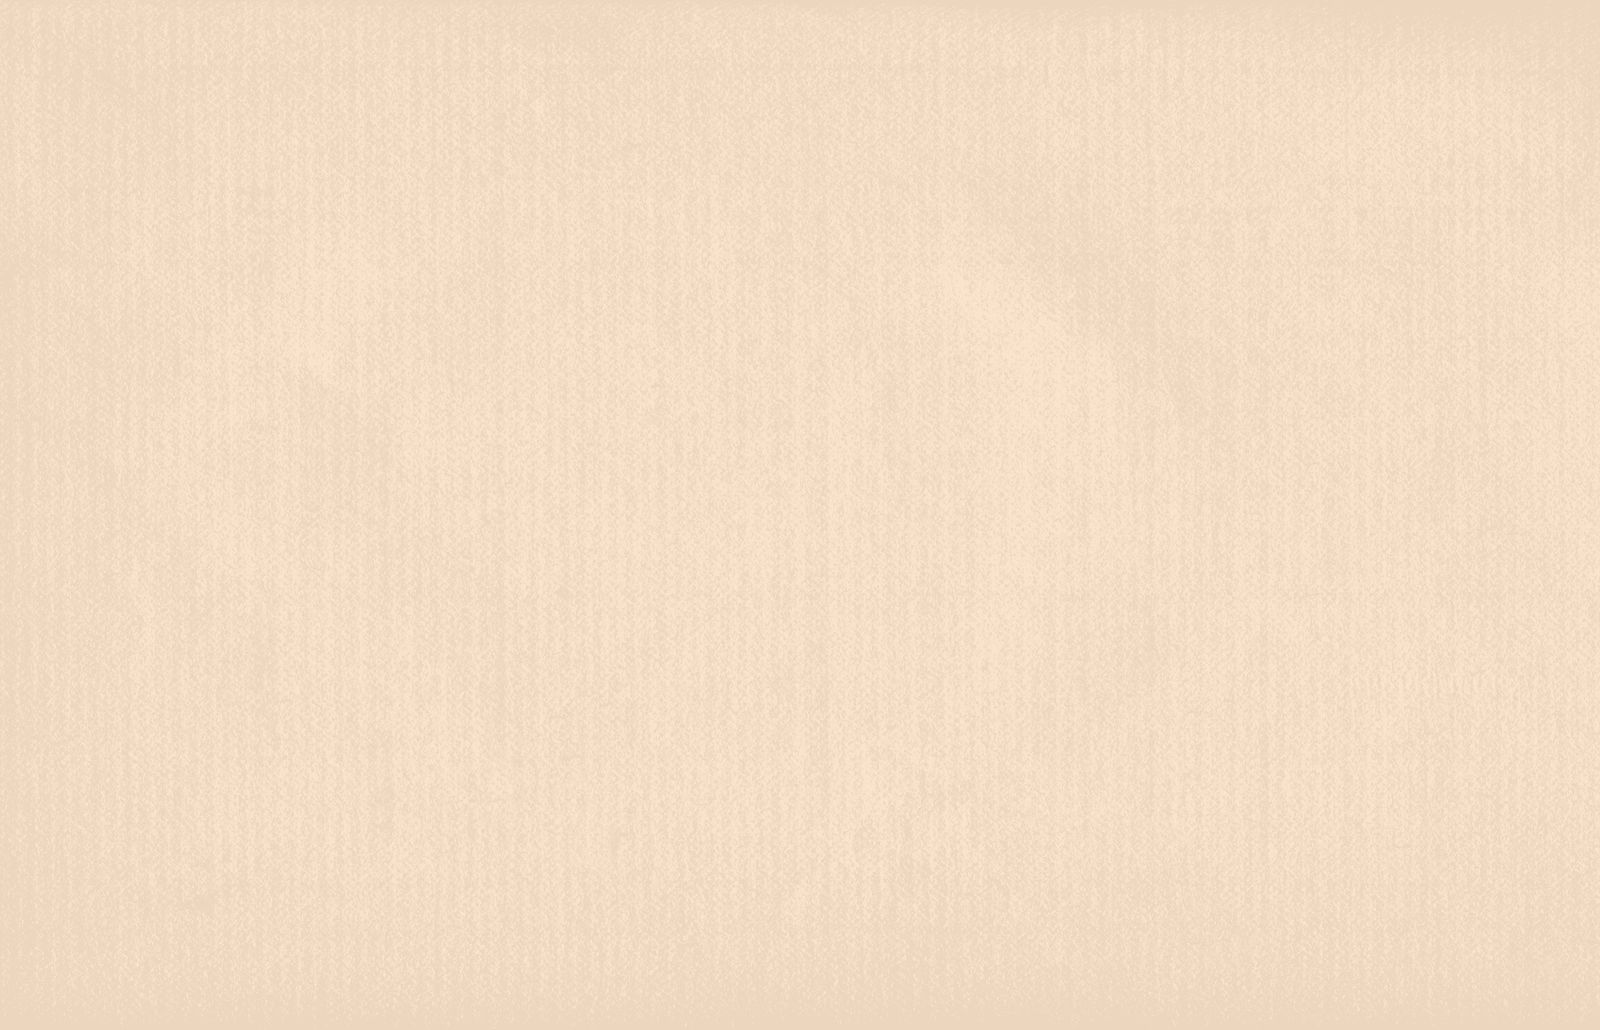 Linen textured cream colored paper